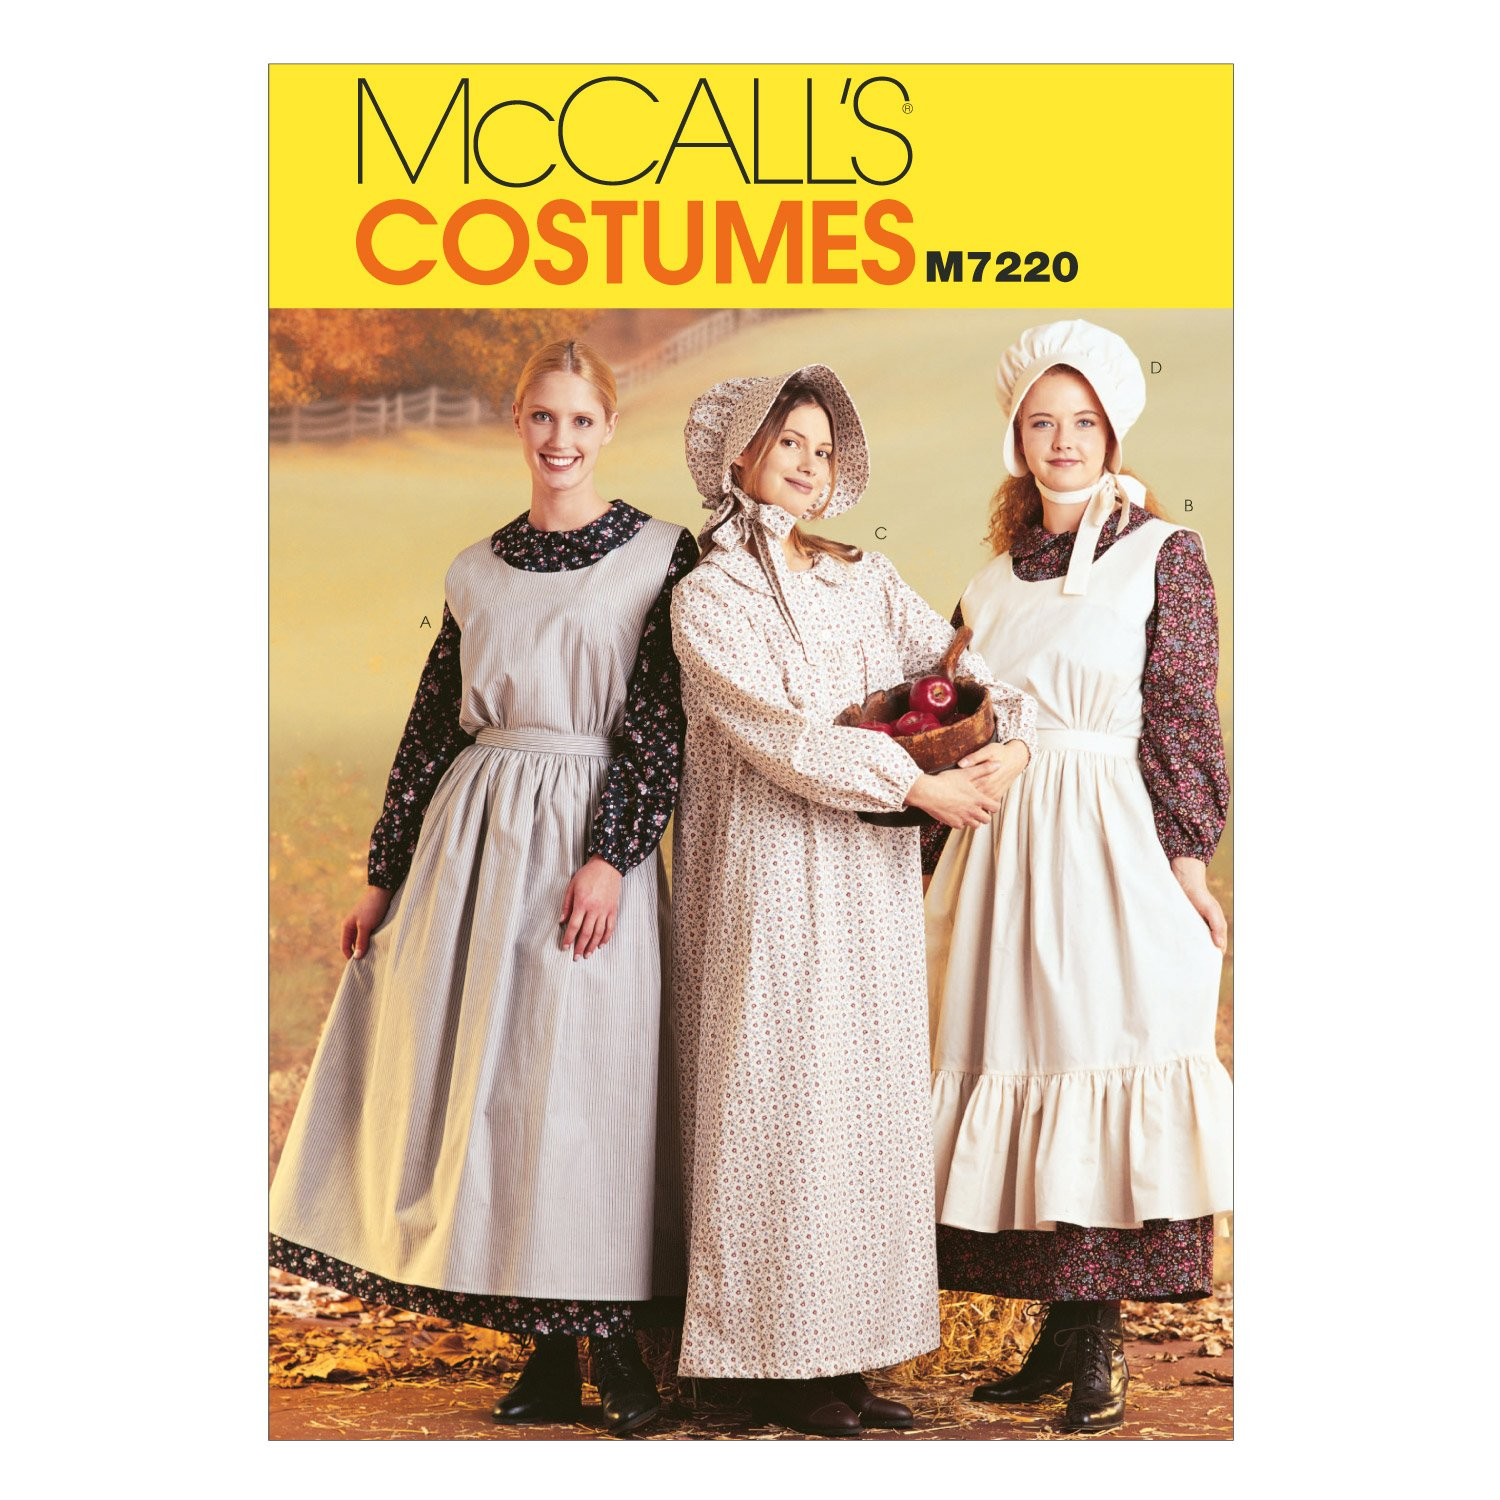 Amazon mccalls patterns m7220 misses pioneer costumes amazon mccalls patterns m7220 misses pioneer costumes sewing template sml 8 10 arts crafts sewing jeuxipadfo Images